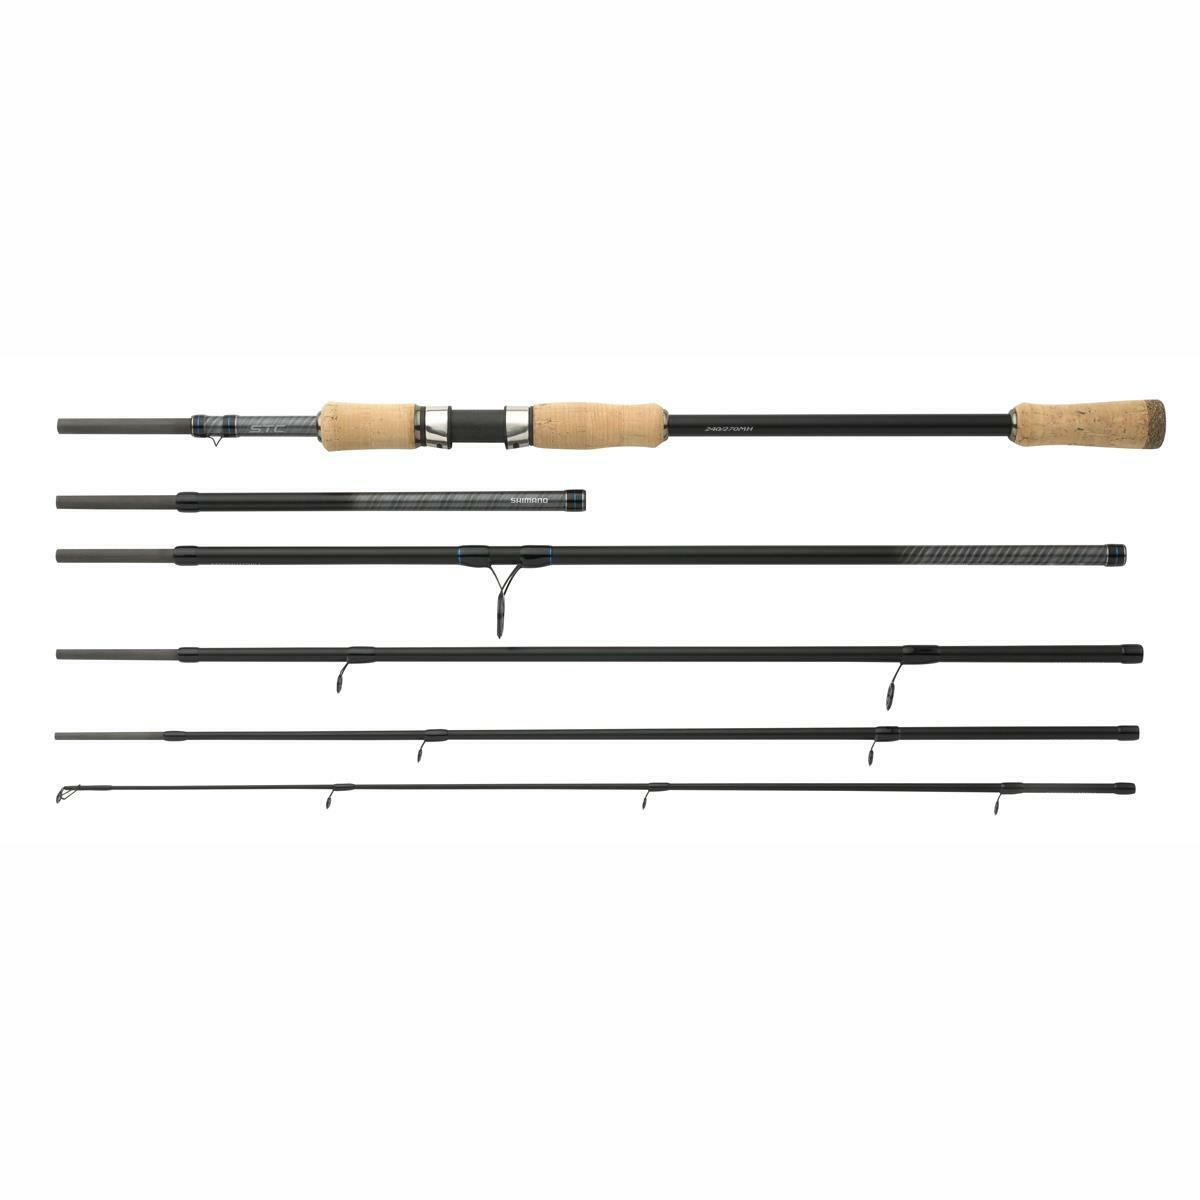 Shimano STC 240 270L 3-14g   Travel Multi Length Spin Fishing Rod